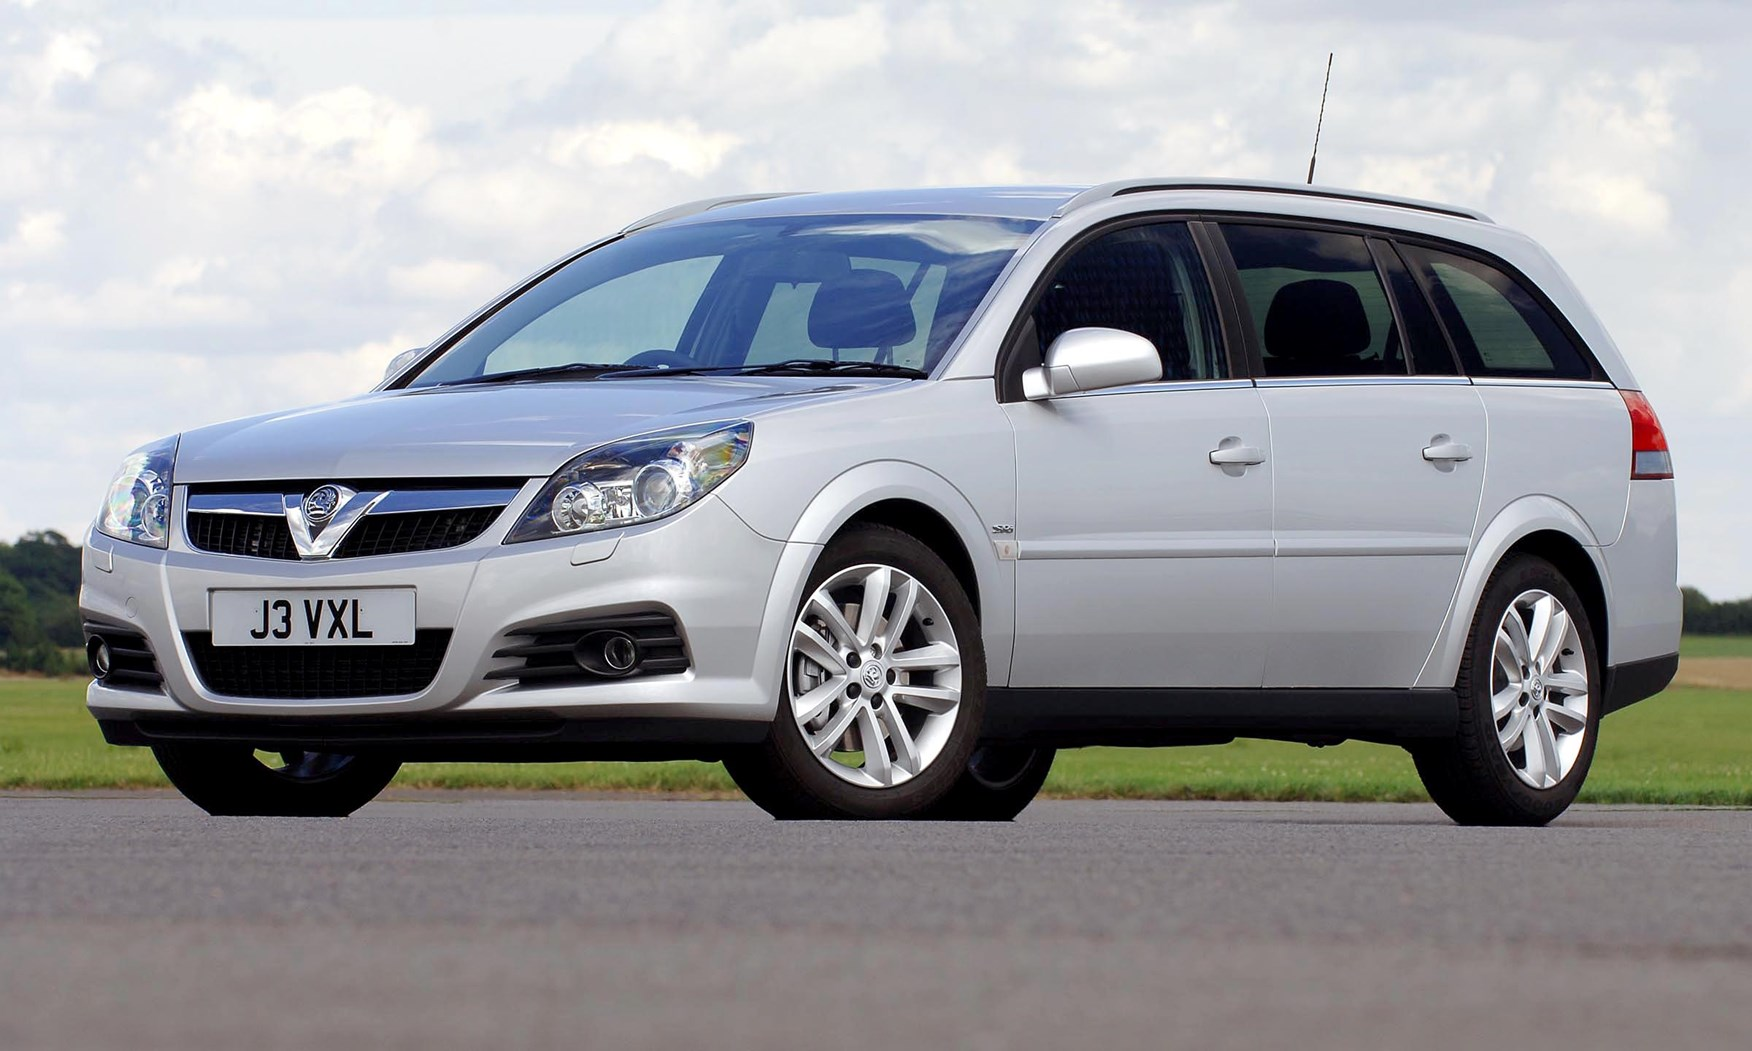 vauxhall vectra estate review 2005 2008 parkers. Black Bedroom Furniture Sets. Home Design Ideas